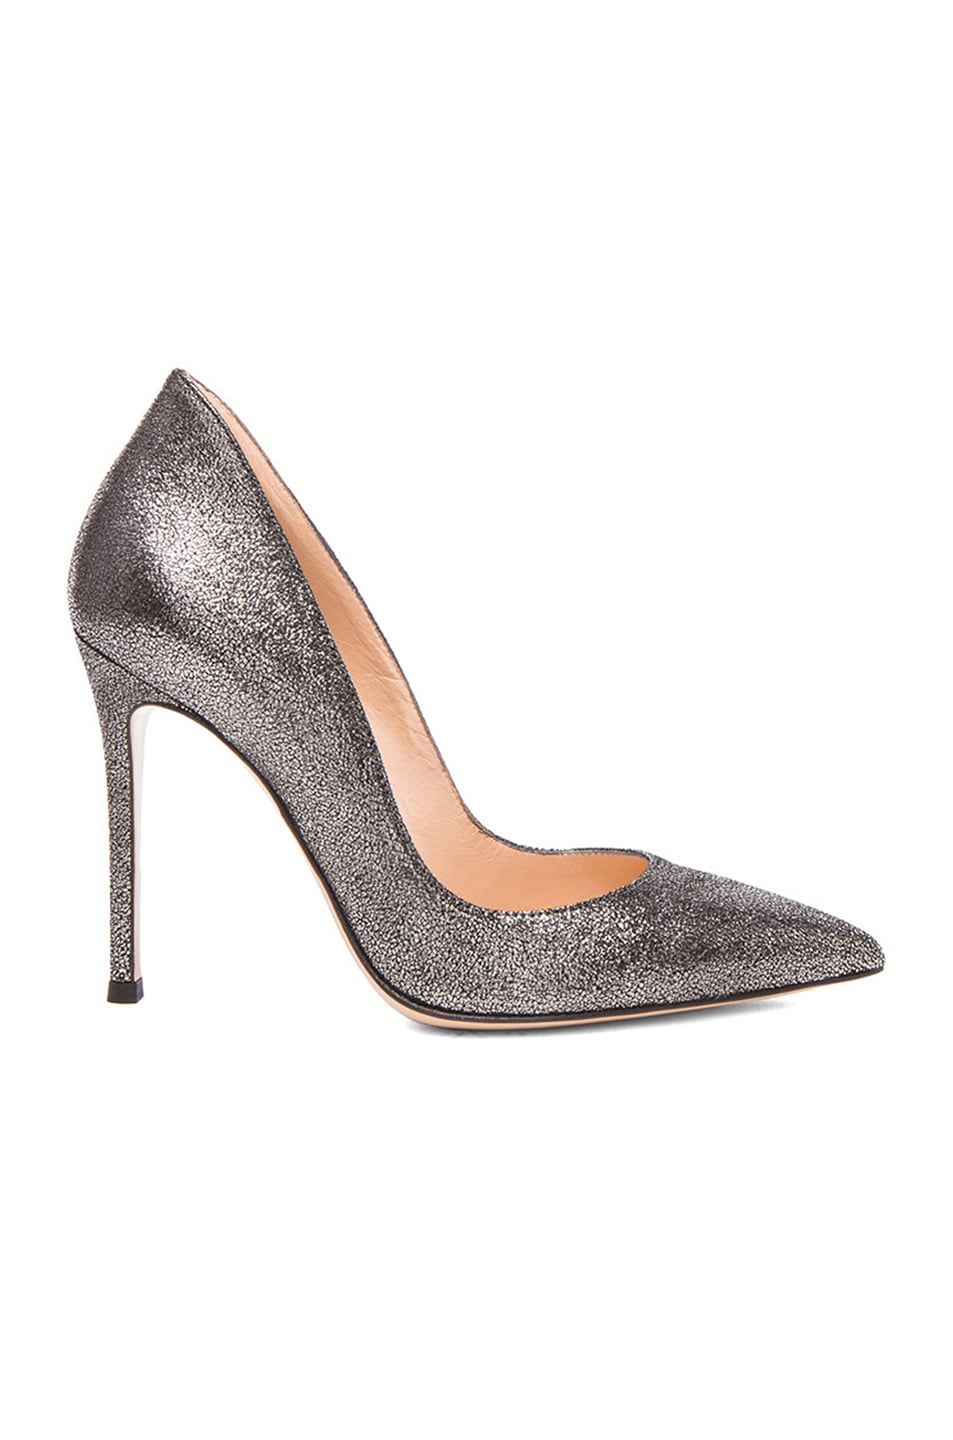 Image 1 of Gianvito Rossi Pointed Crackled Leather Pumps in Argento